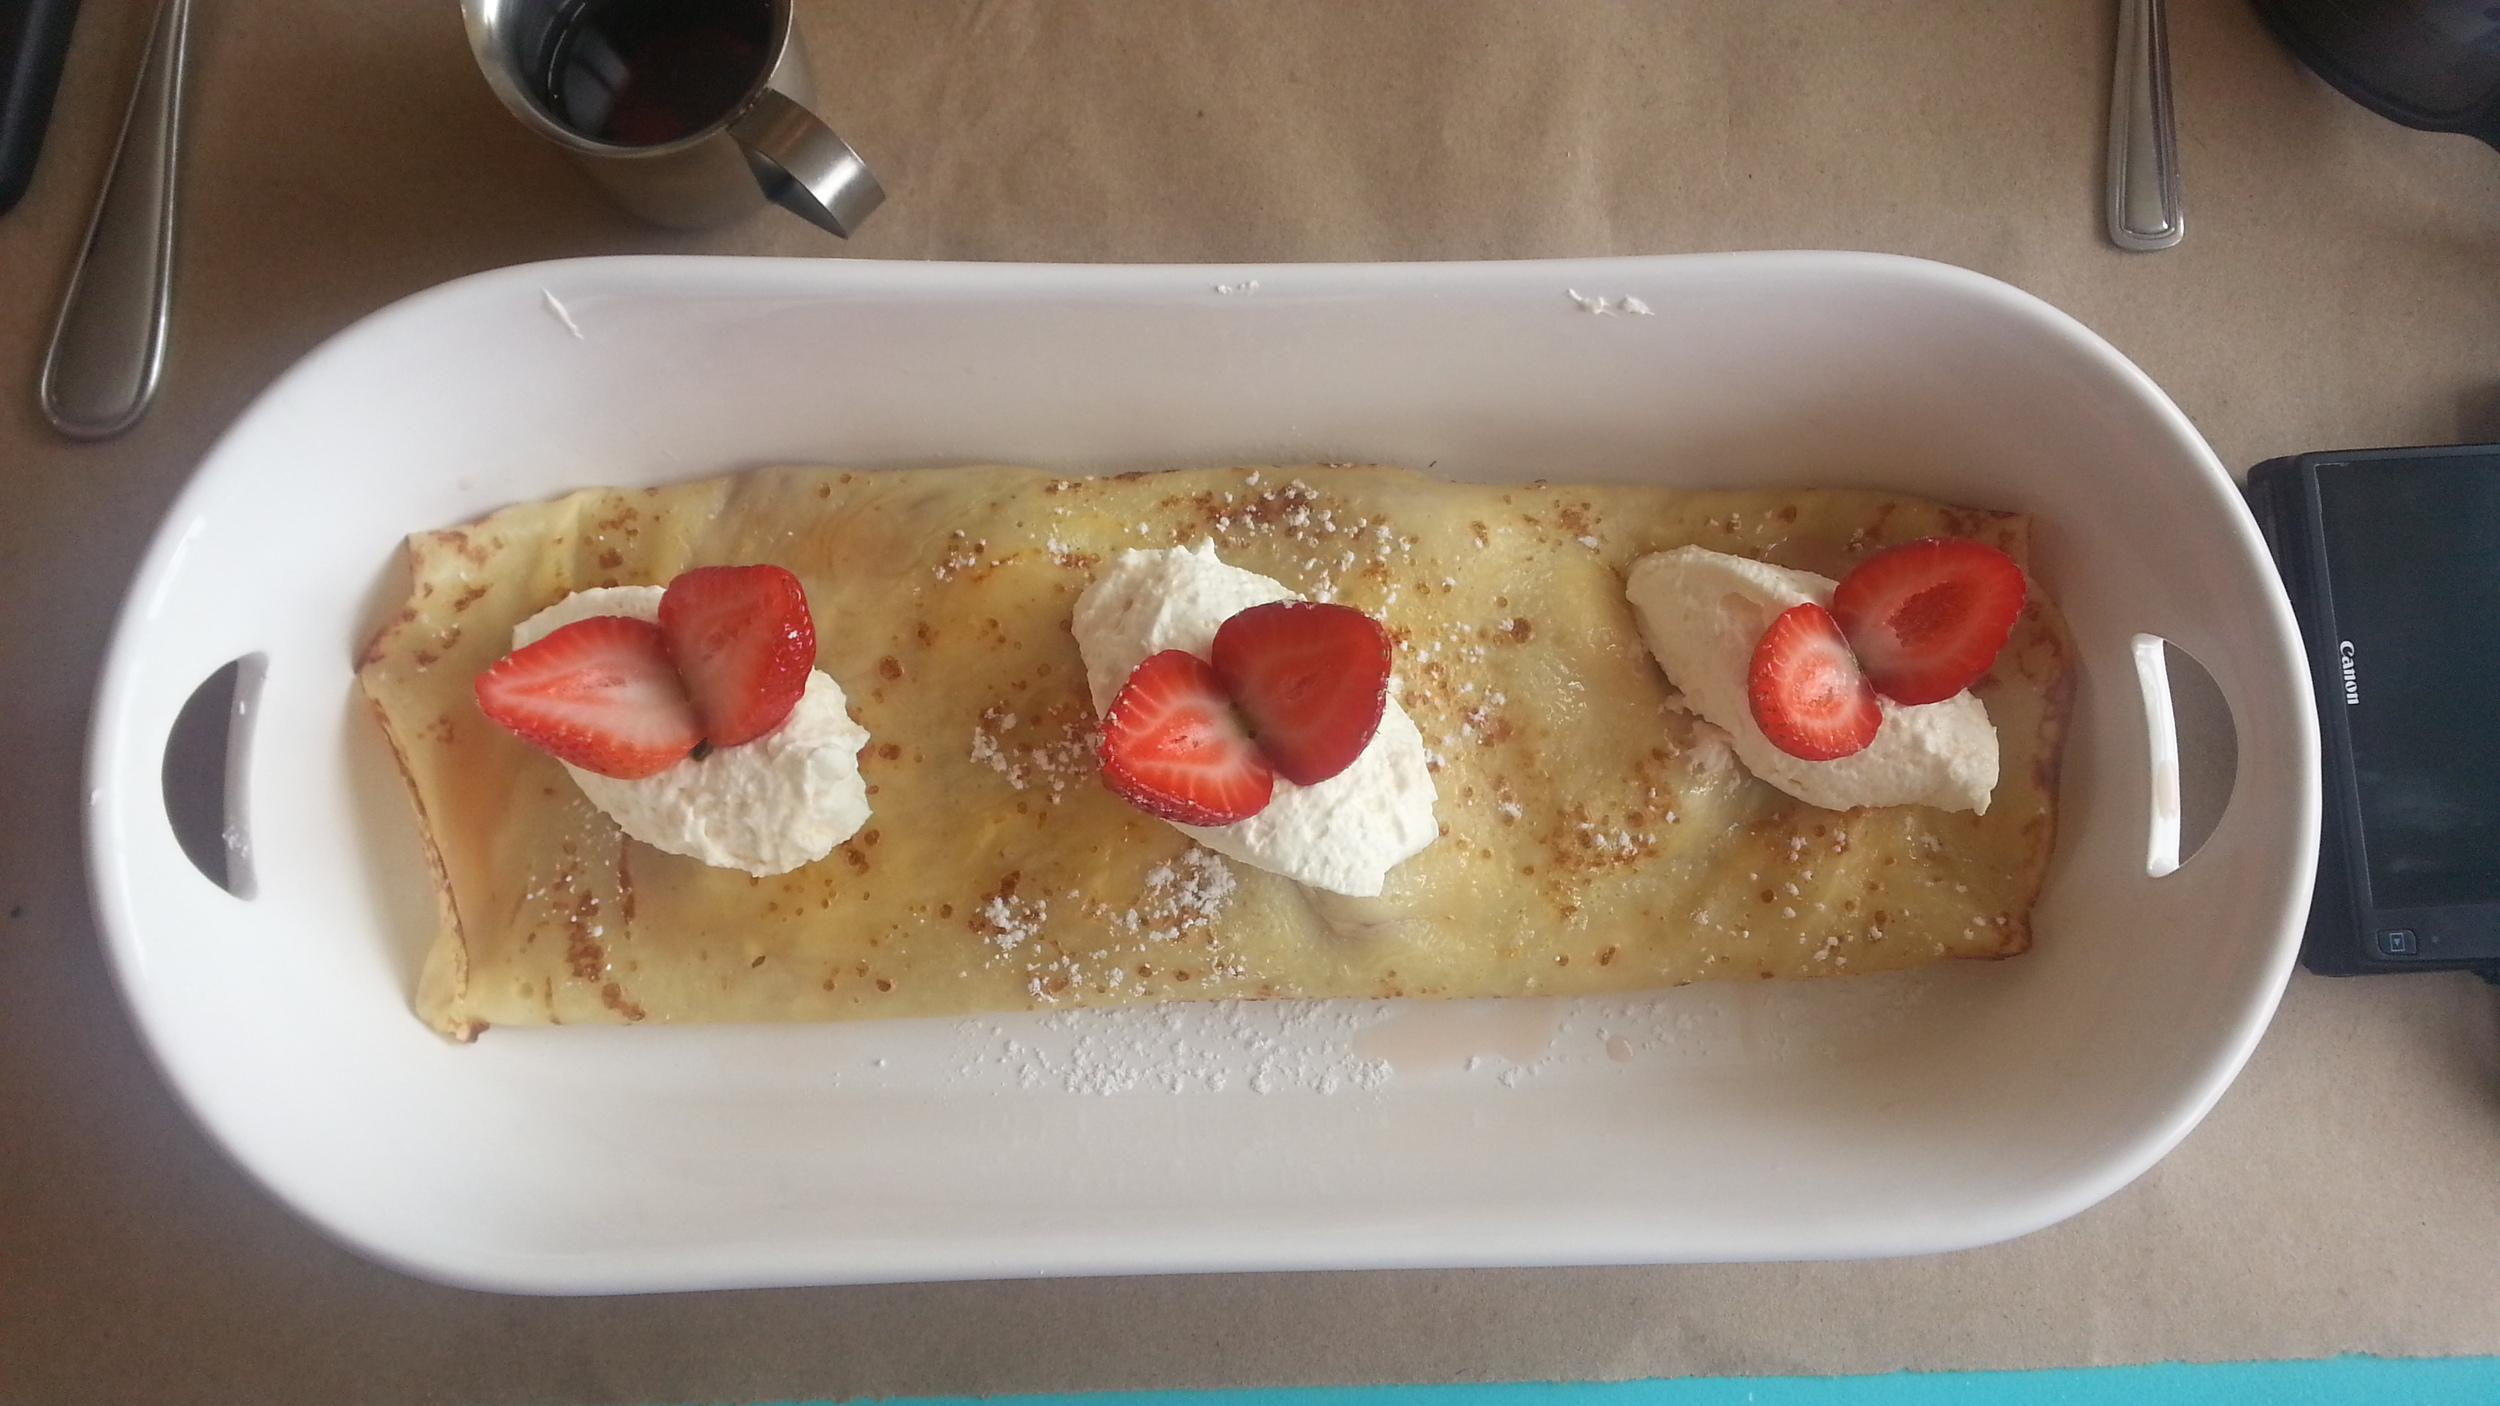 Cream cheese + strawberries in syrup crepe